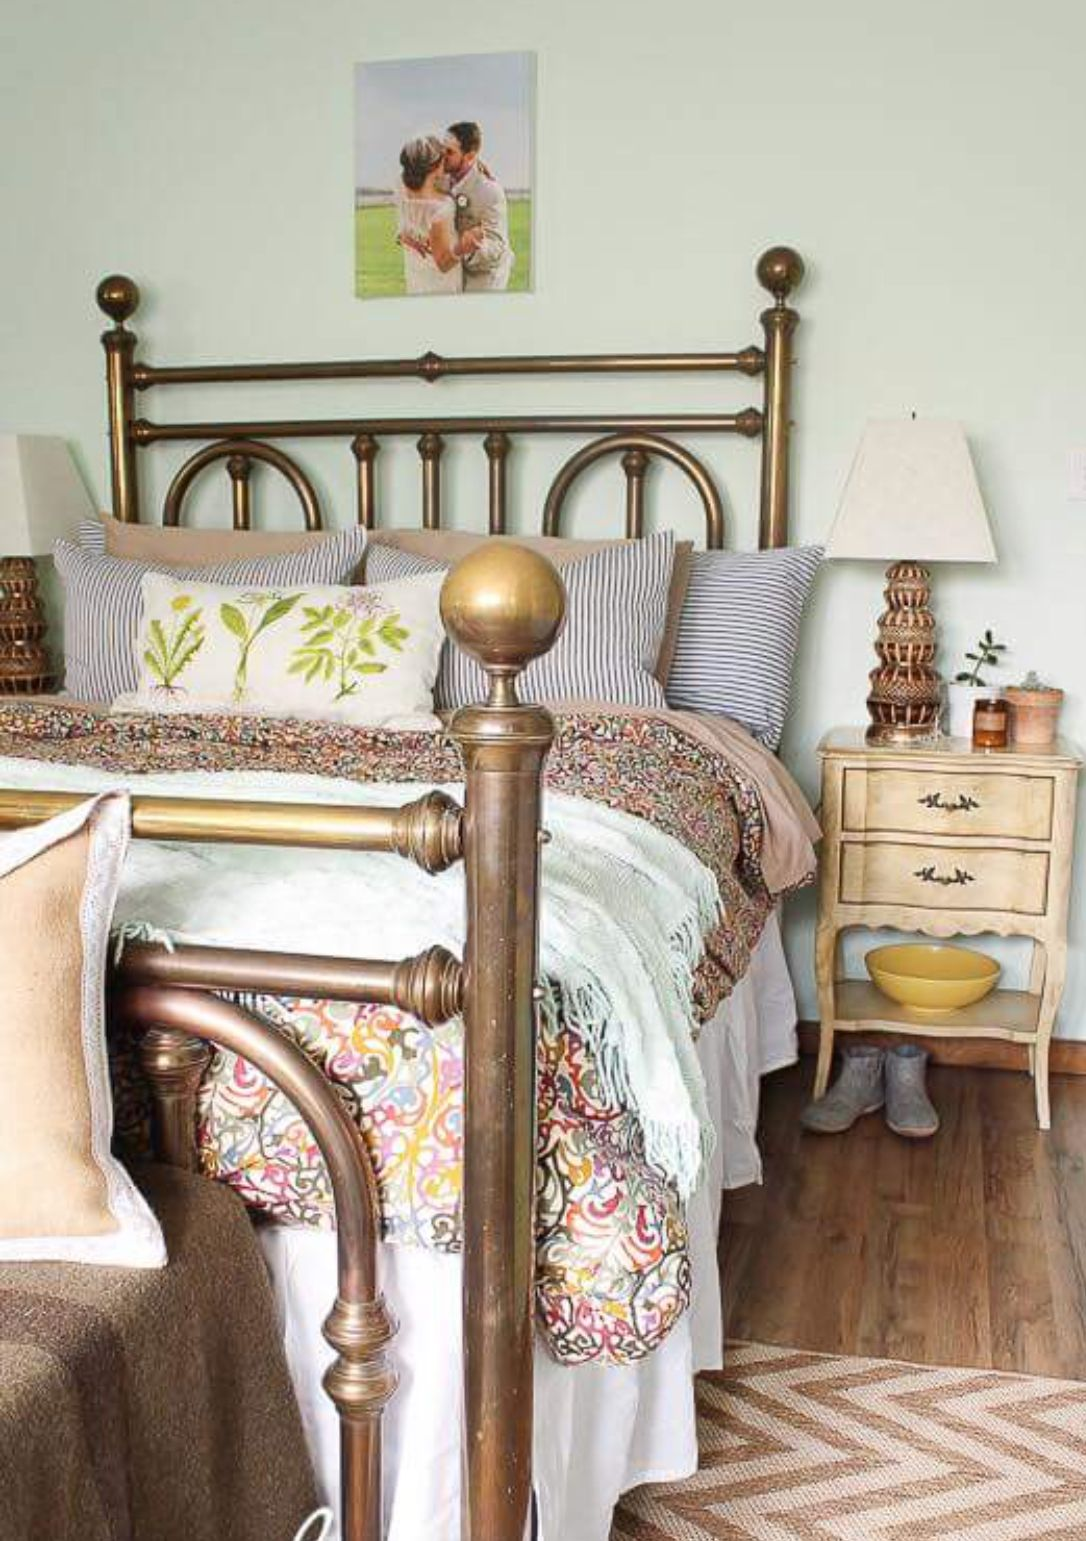 Pin By Tamara Wilson On Bed Frames Headboards Bedroom Vintage Brass Bed Neutral Bedroom Decor